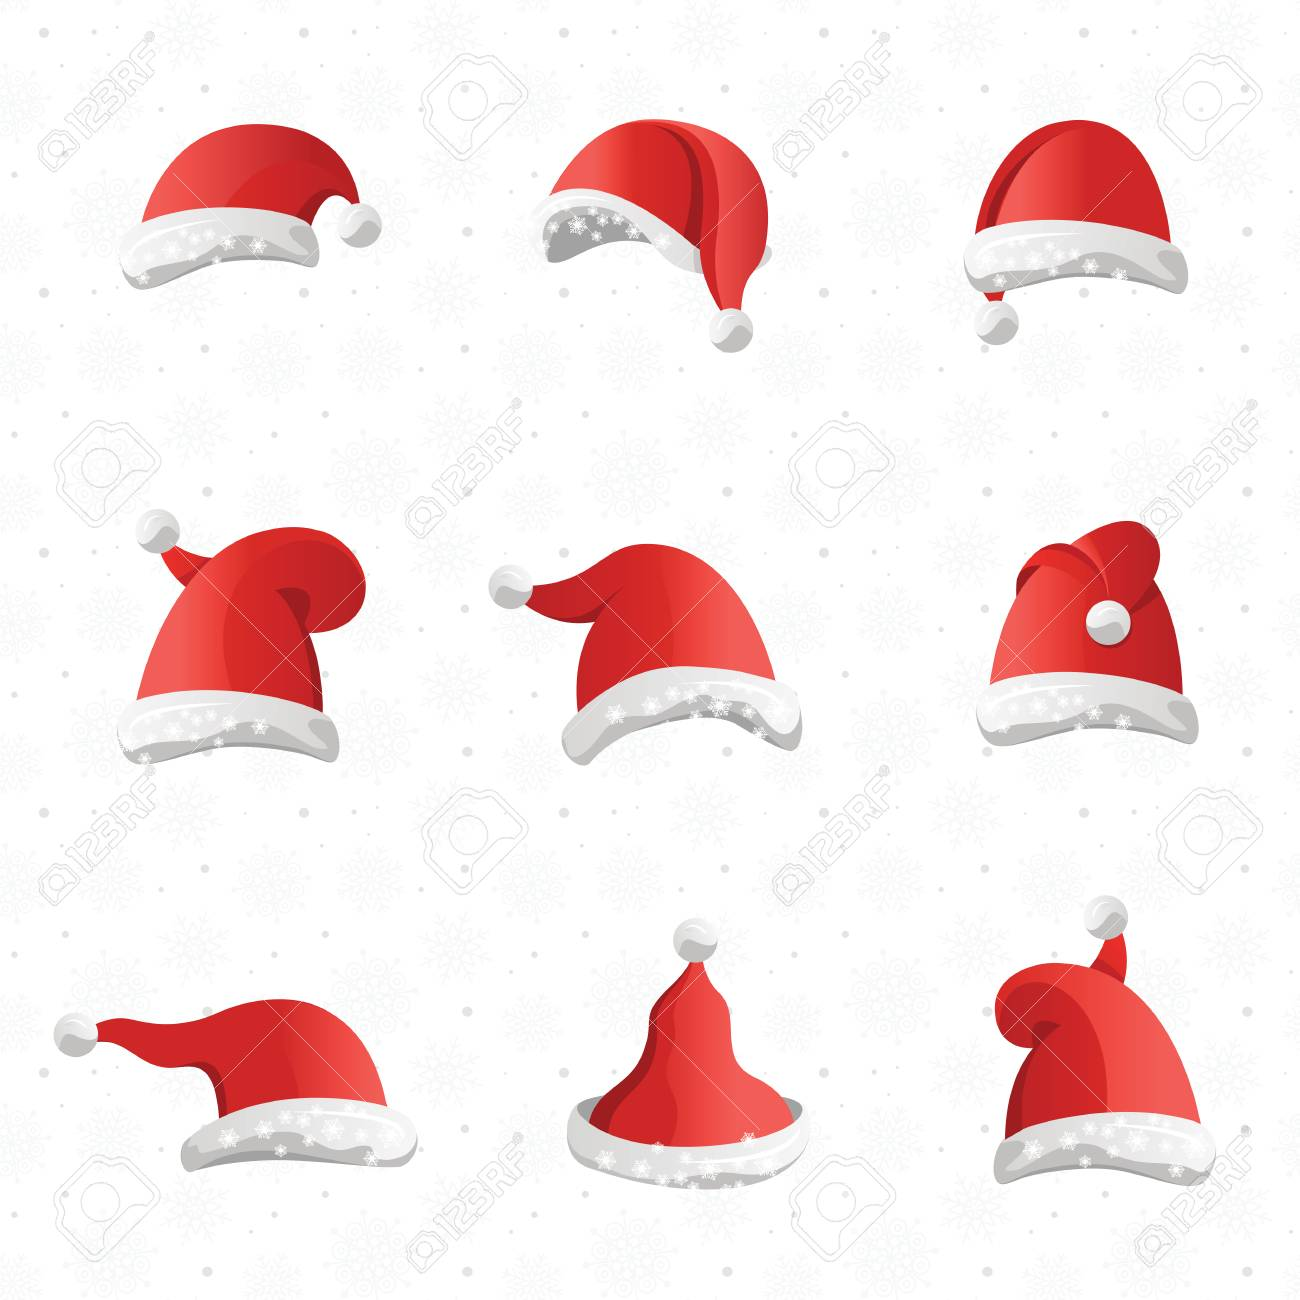 bfa422e1a0e Christmas various hats set in cartoon style on white background. Collection  of Santa Claus headwears